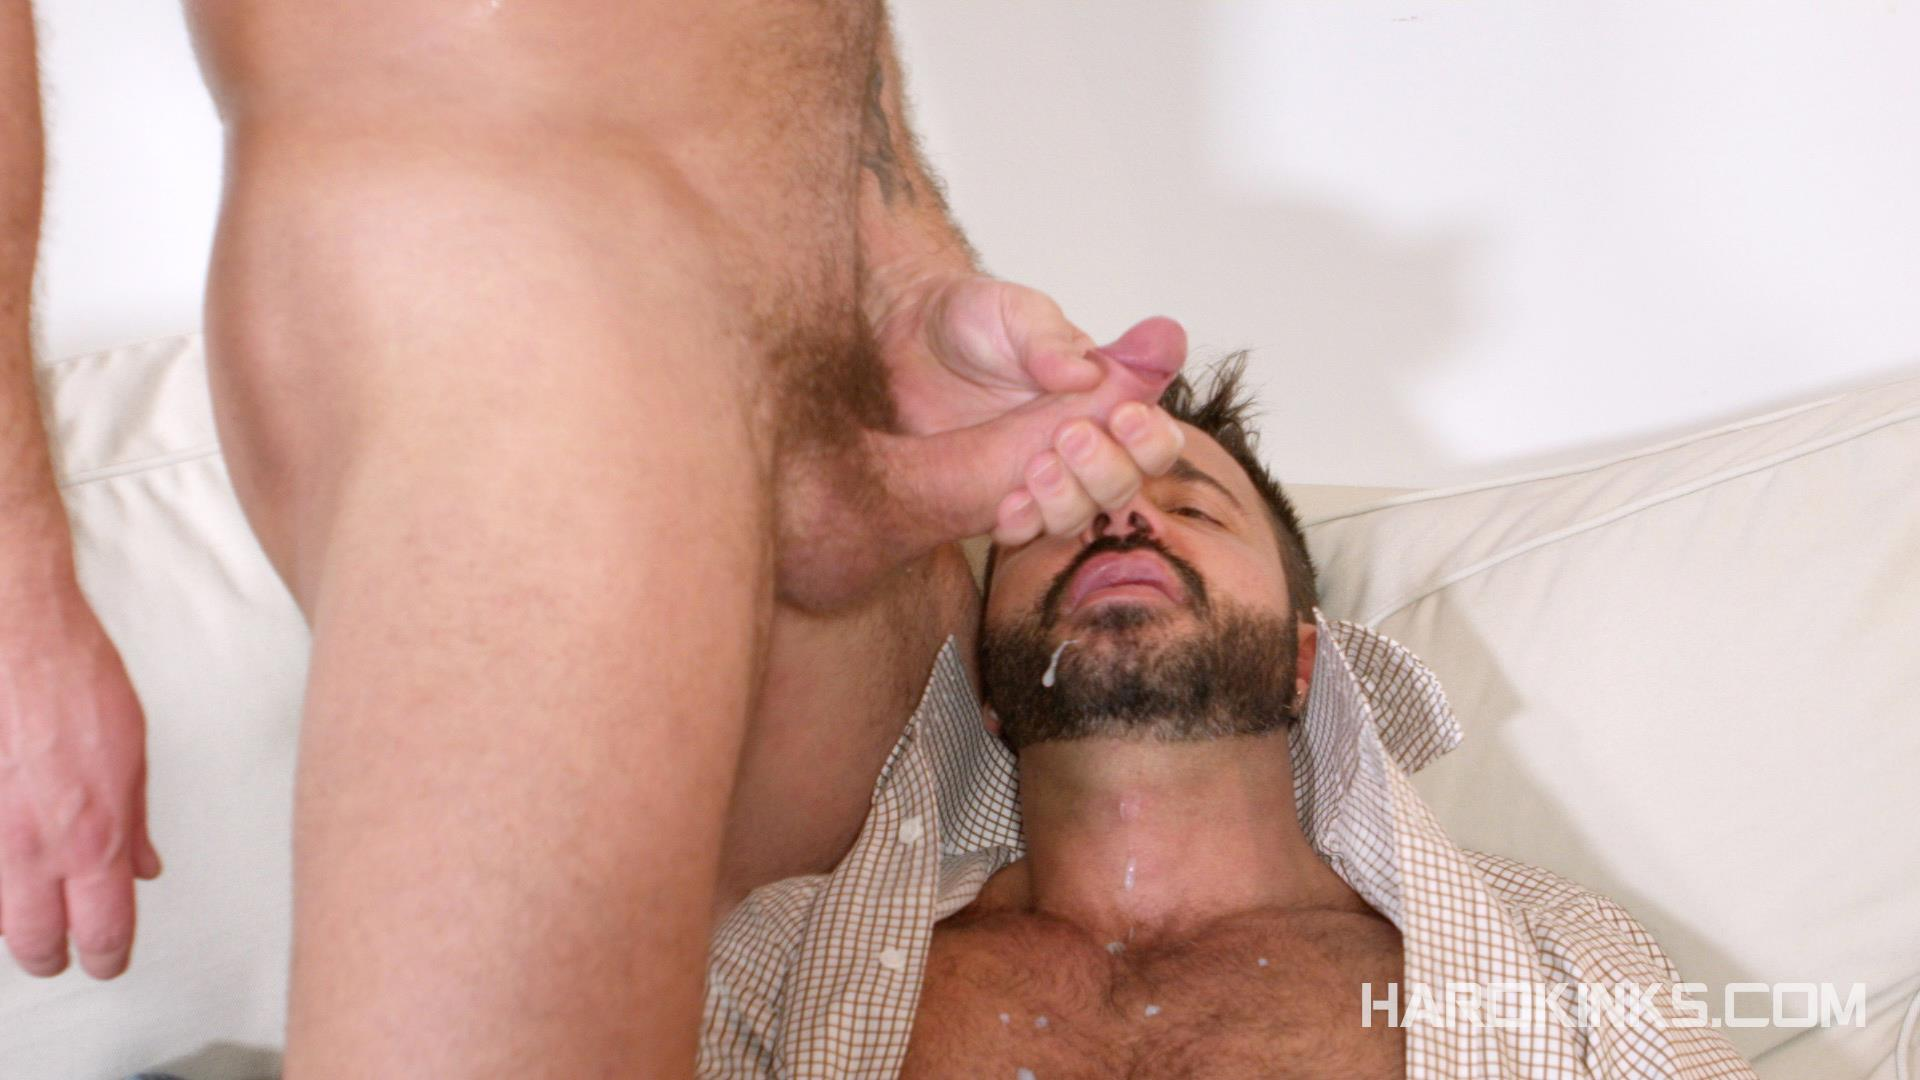 Hardkinks Jessy Ares and Martin Mazza Hairy Alpha Male Amateur Gay Porn 12